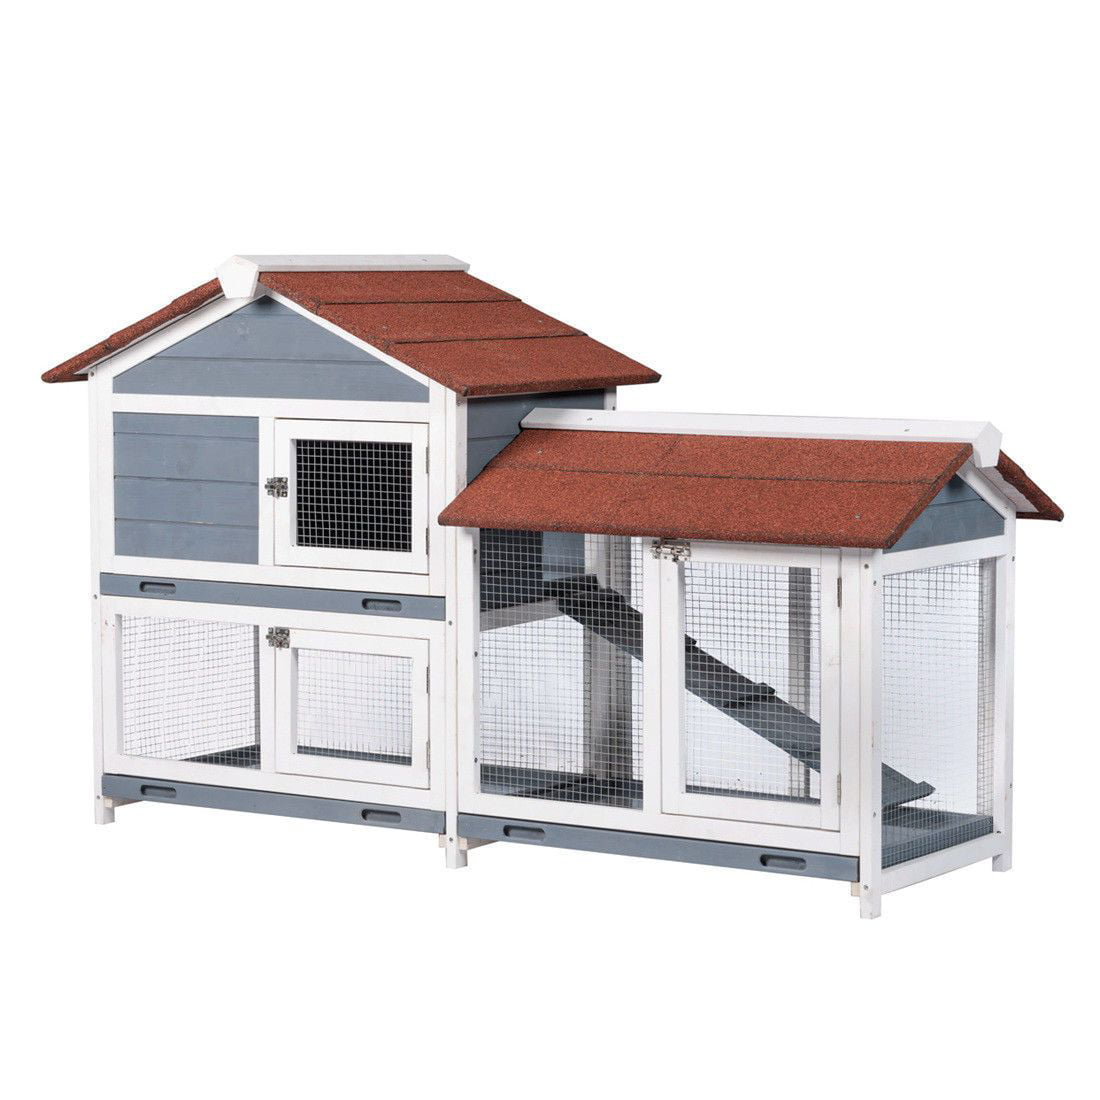 Good Life Wooden Waterproof Rabbit Hutch Pet House by